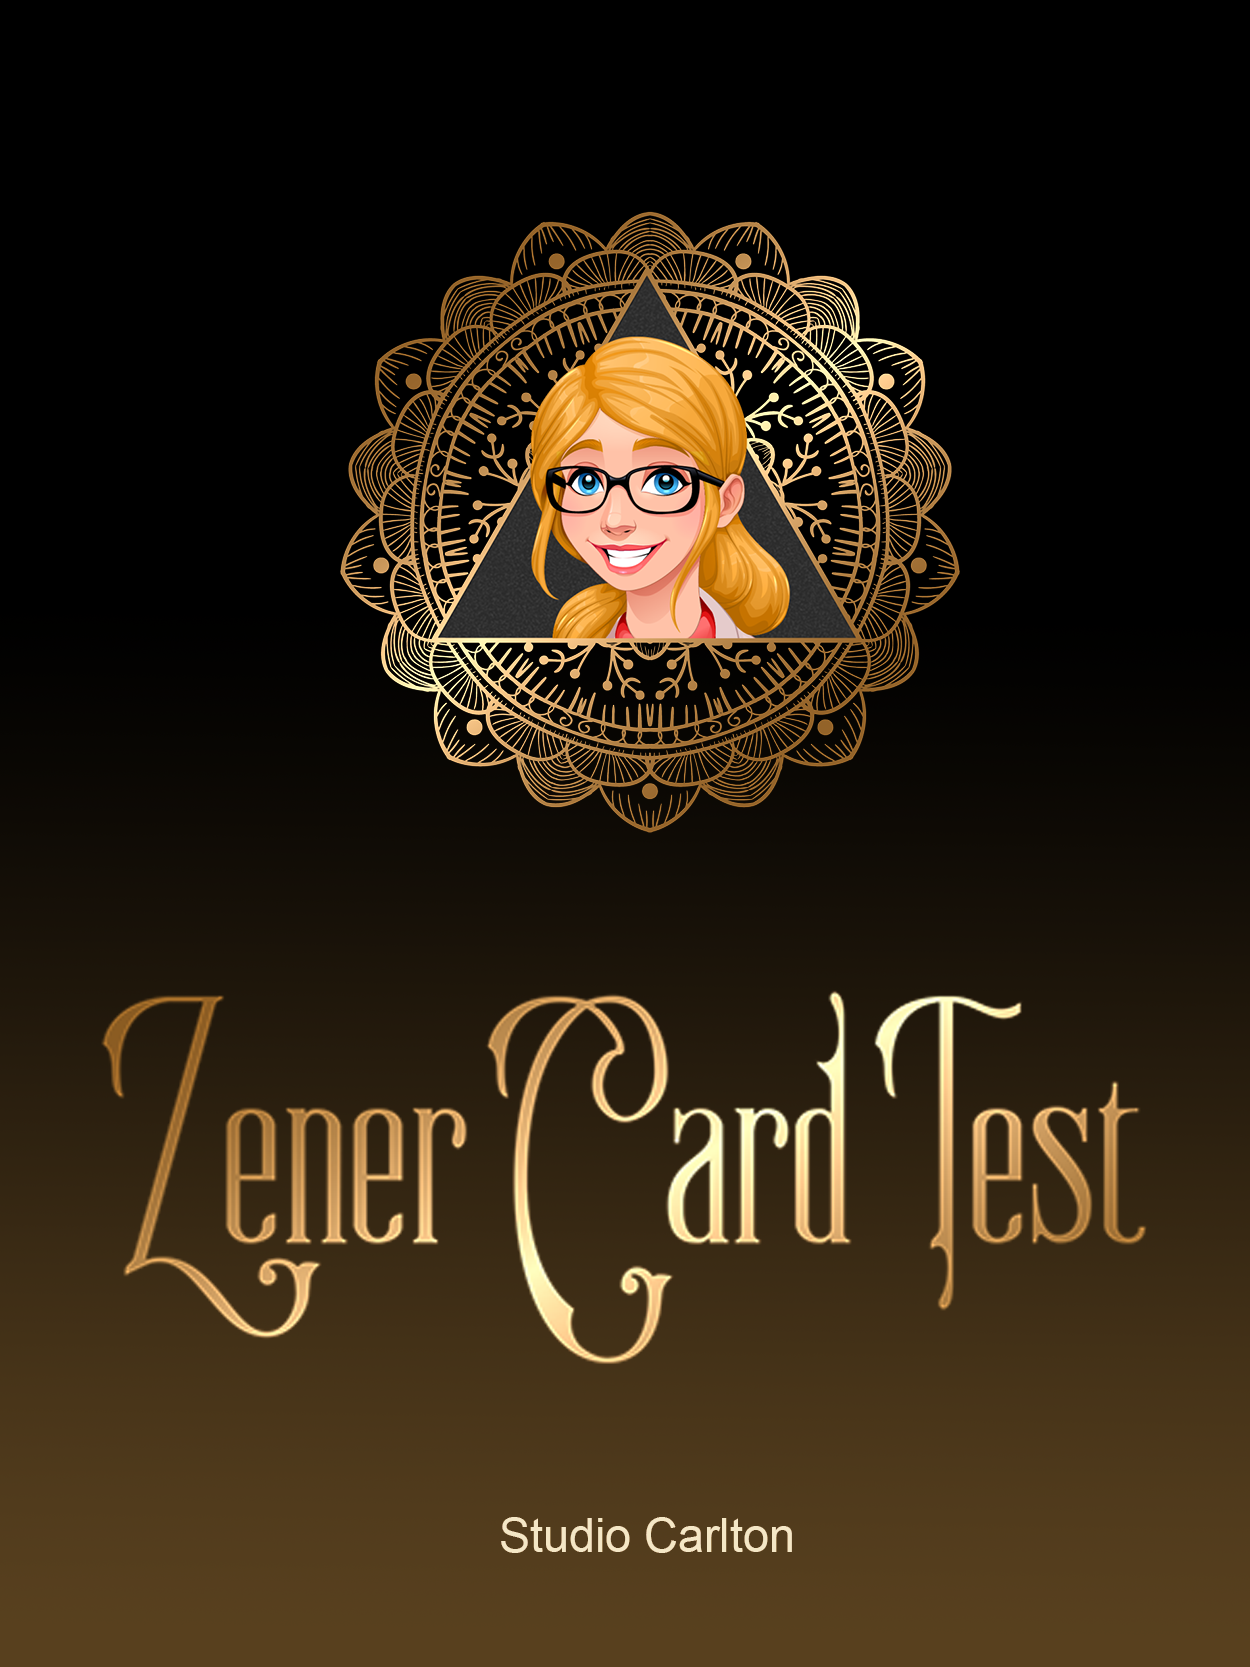 Are You Psychic? Take the Zener Card Test Alexa Skill